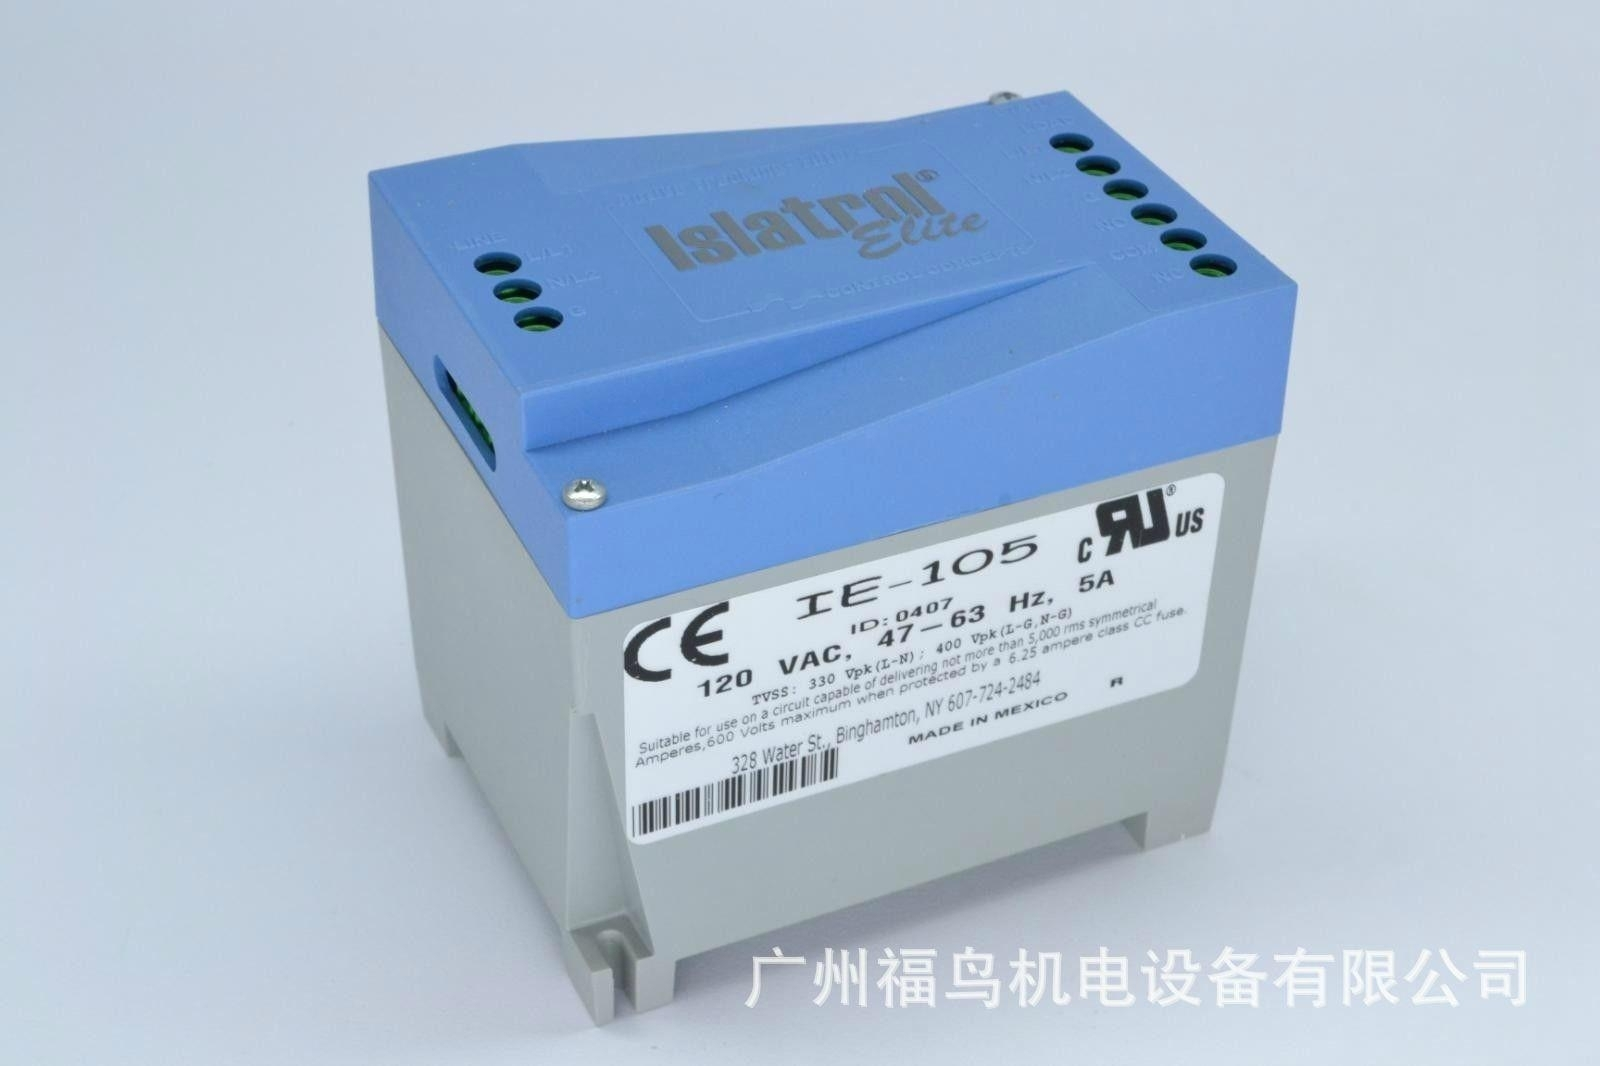 ?EMERSON CONTROL CONCEPTS電源濾波器, 型號: IE-105